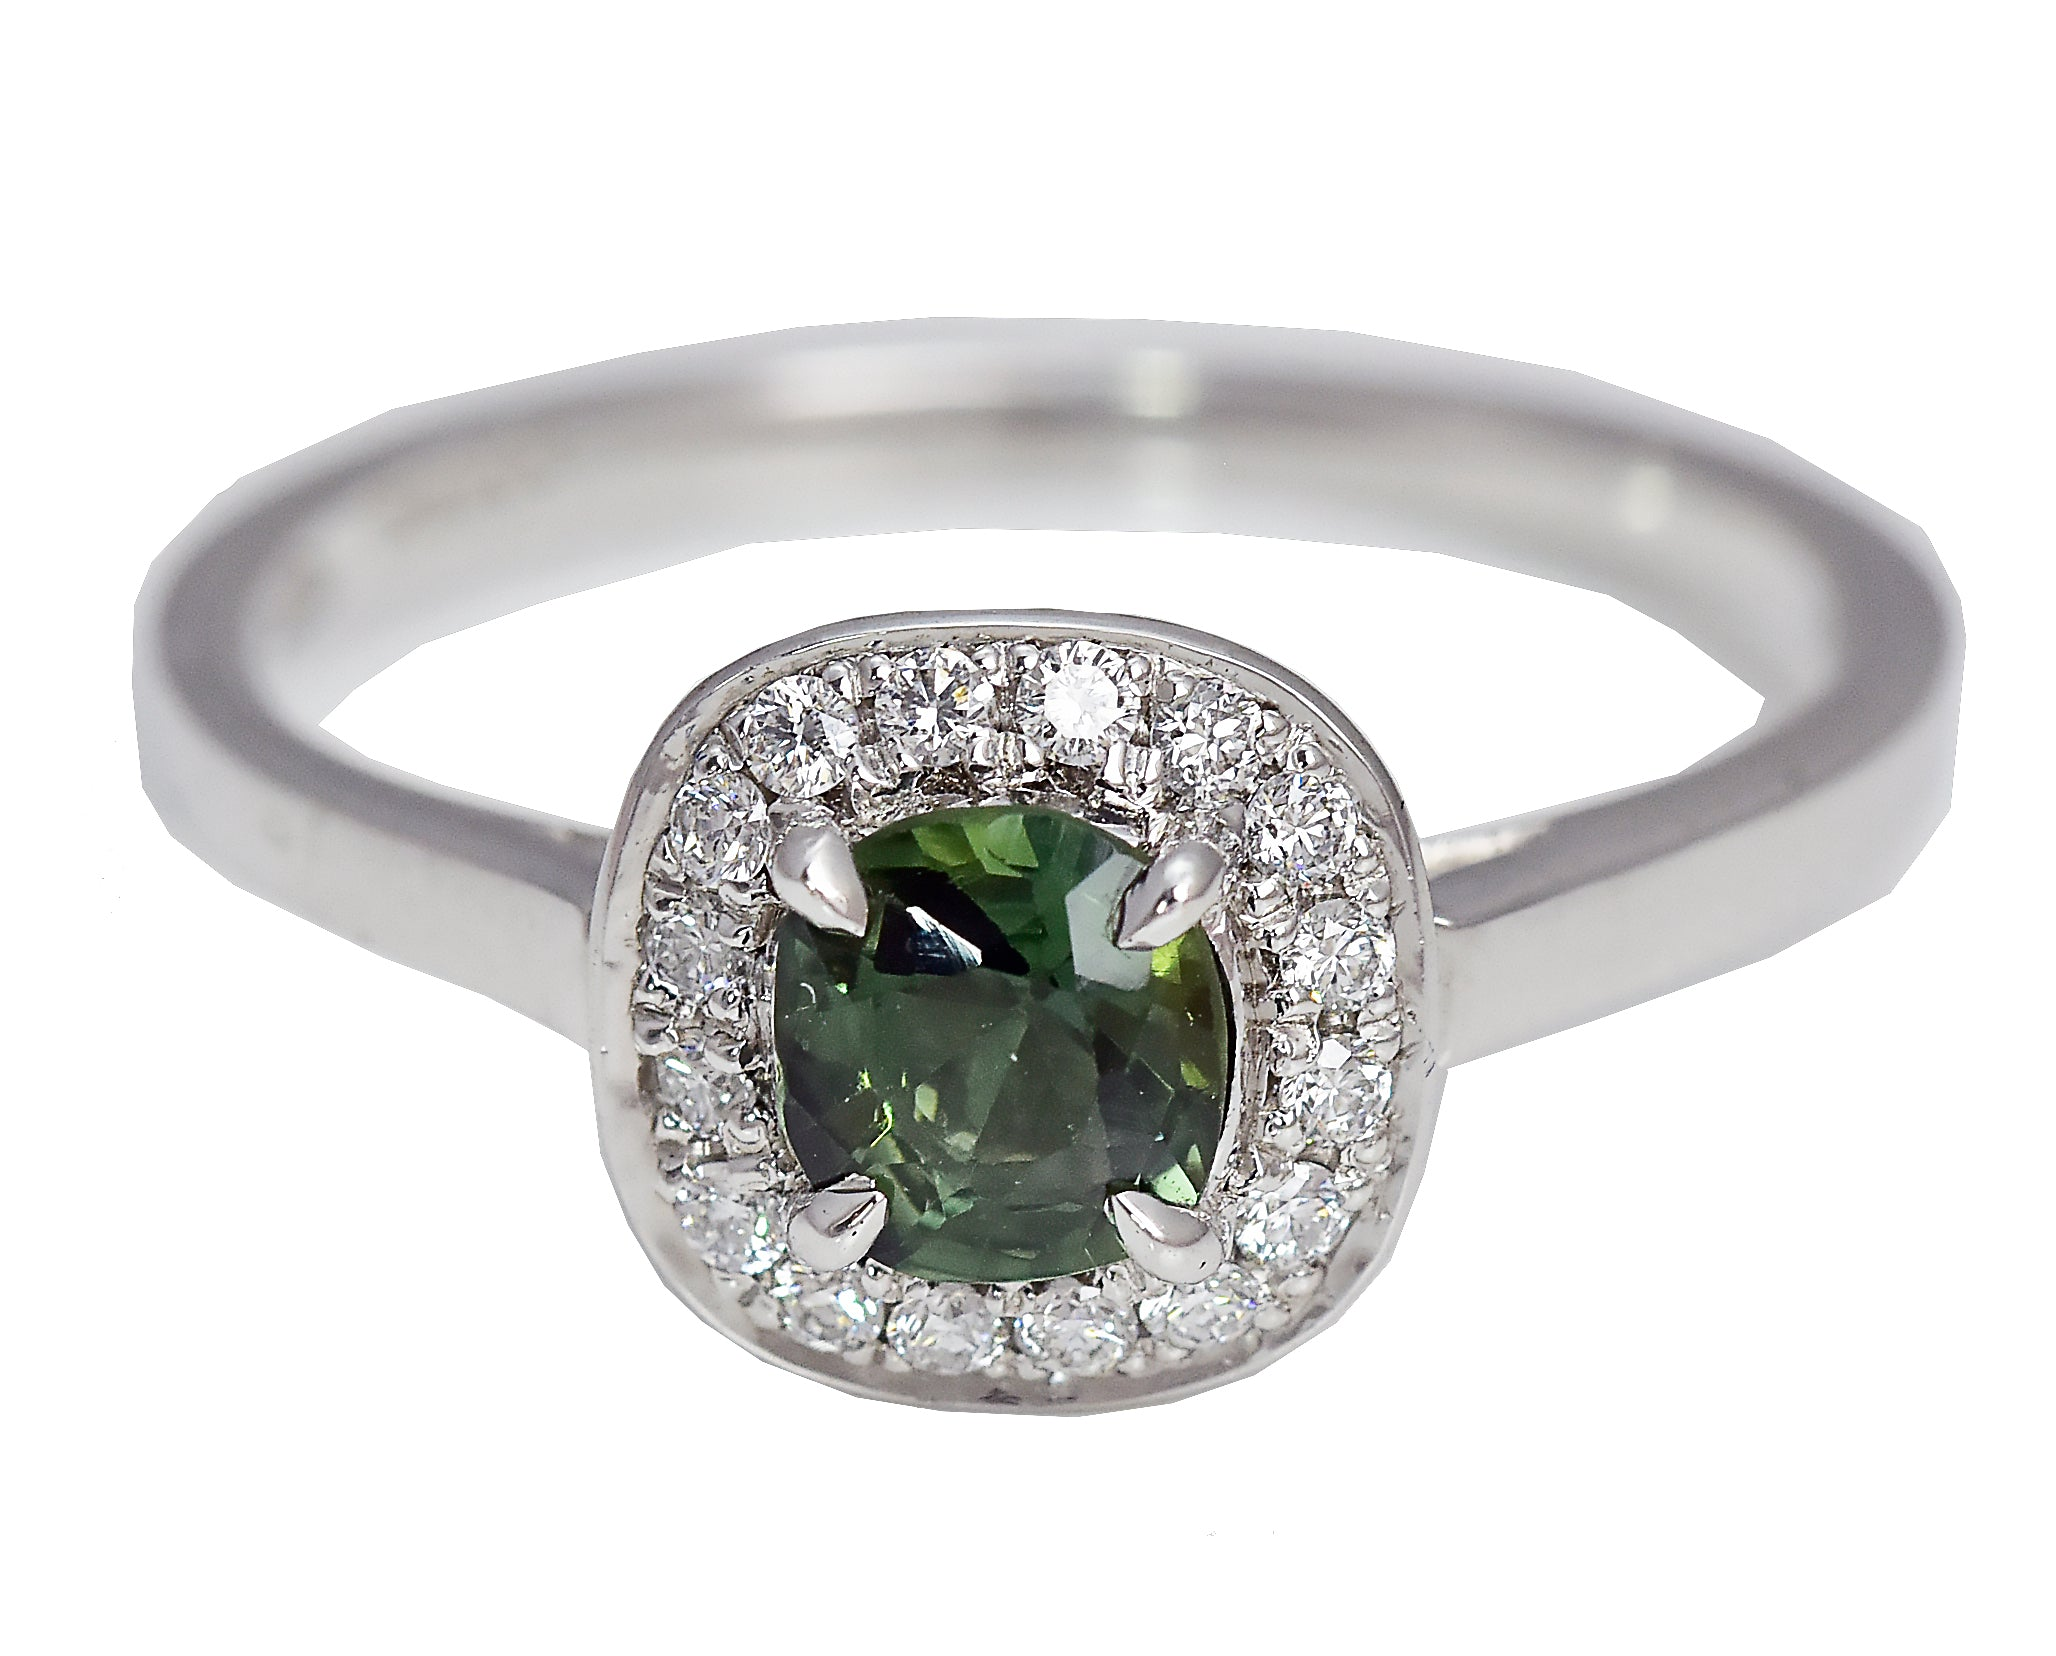 Green Sapphire Ring with White Diamond Halo